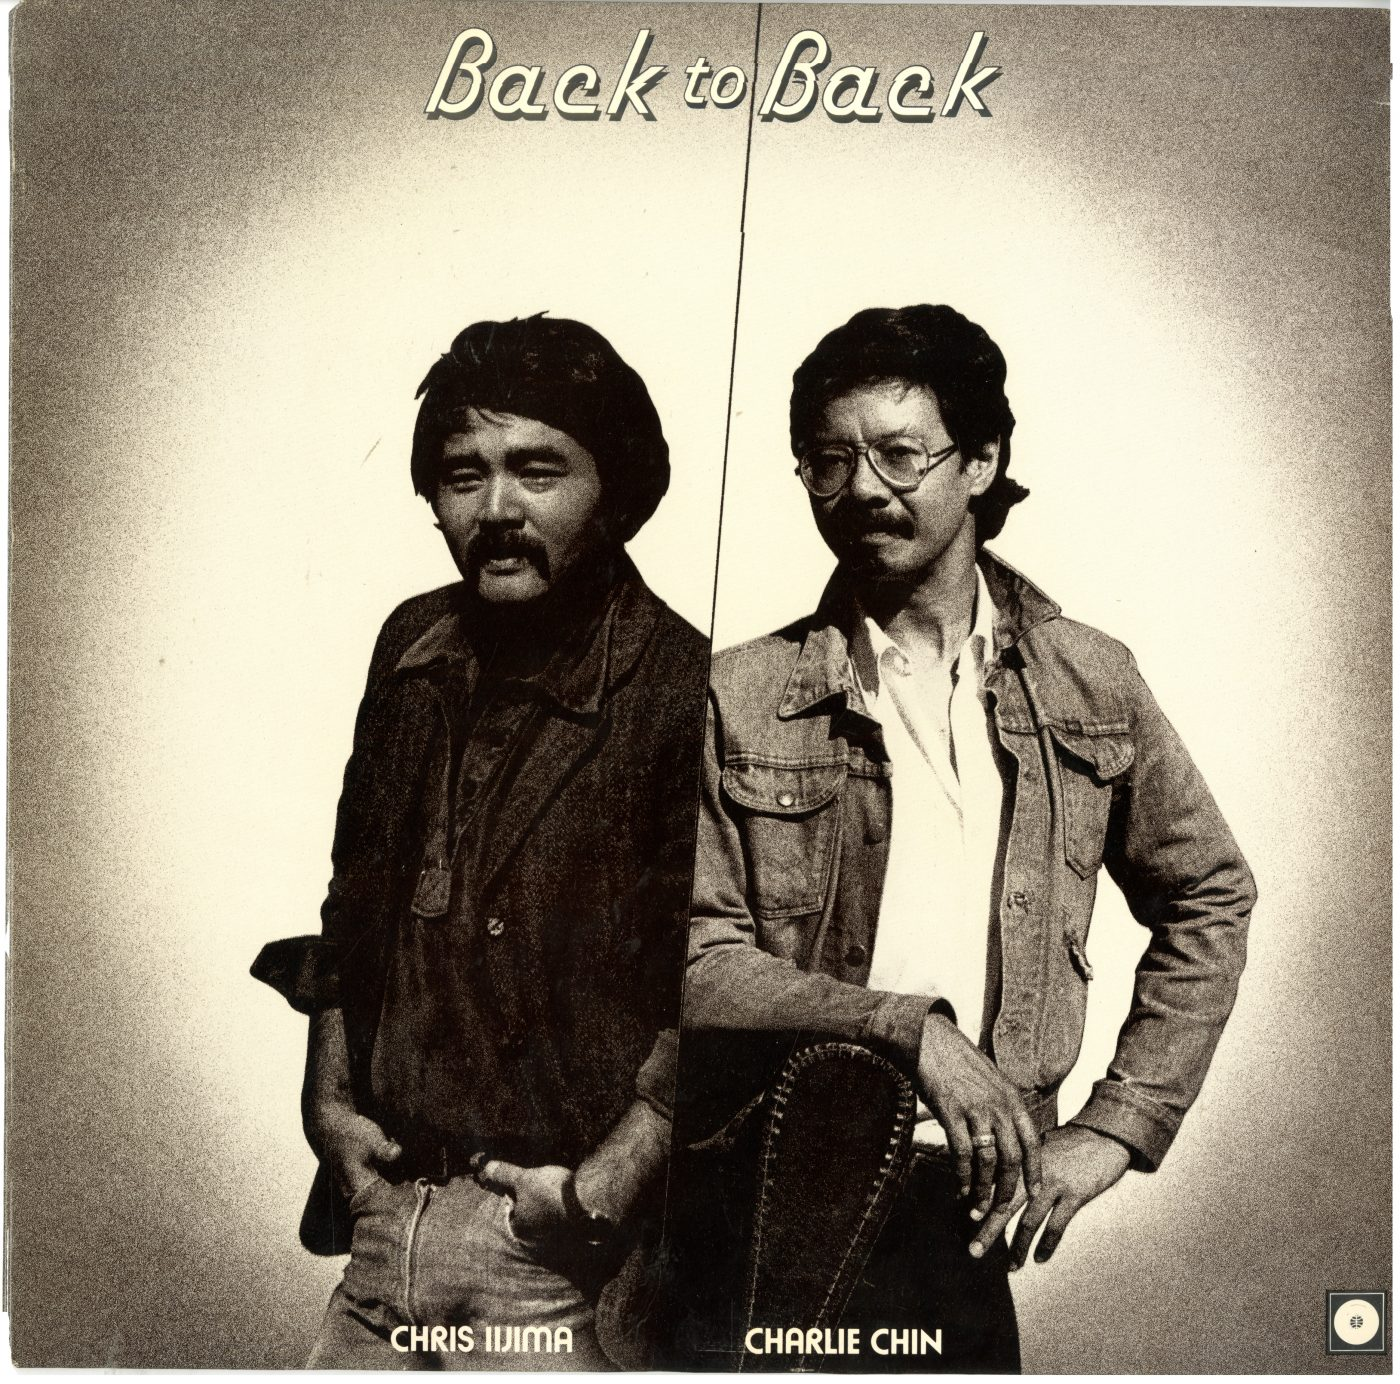 21 May 2019 Posted. Chris Iijima & Charlie Chin on the Cover of Album Back to Back, Courtesy of Henry Chu, Museum of Chinese in America (MOCA) Collection. 克里斯·饭岛和陈建文在专辑《背靠背》封面上,Henry Chu捐赠,美国华人博物馆(MOCA)馆藏